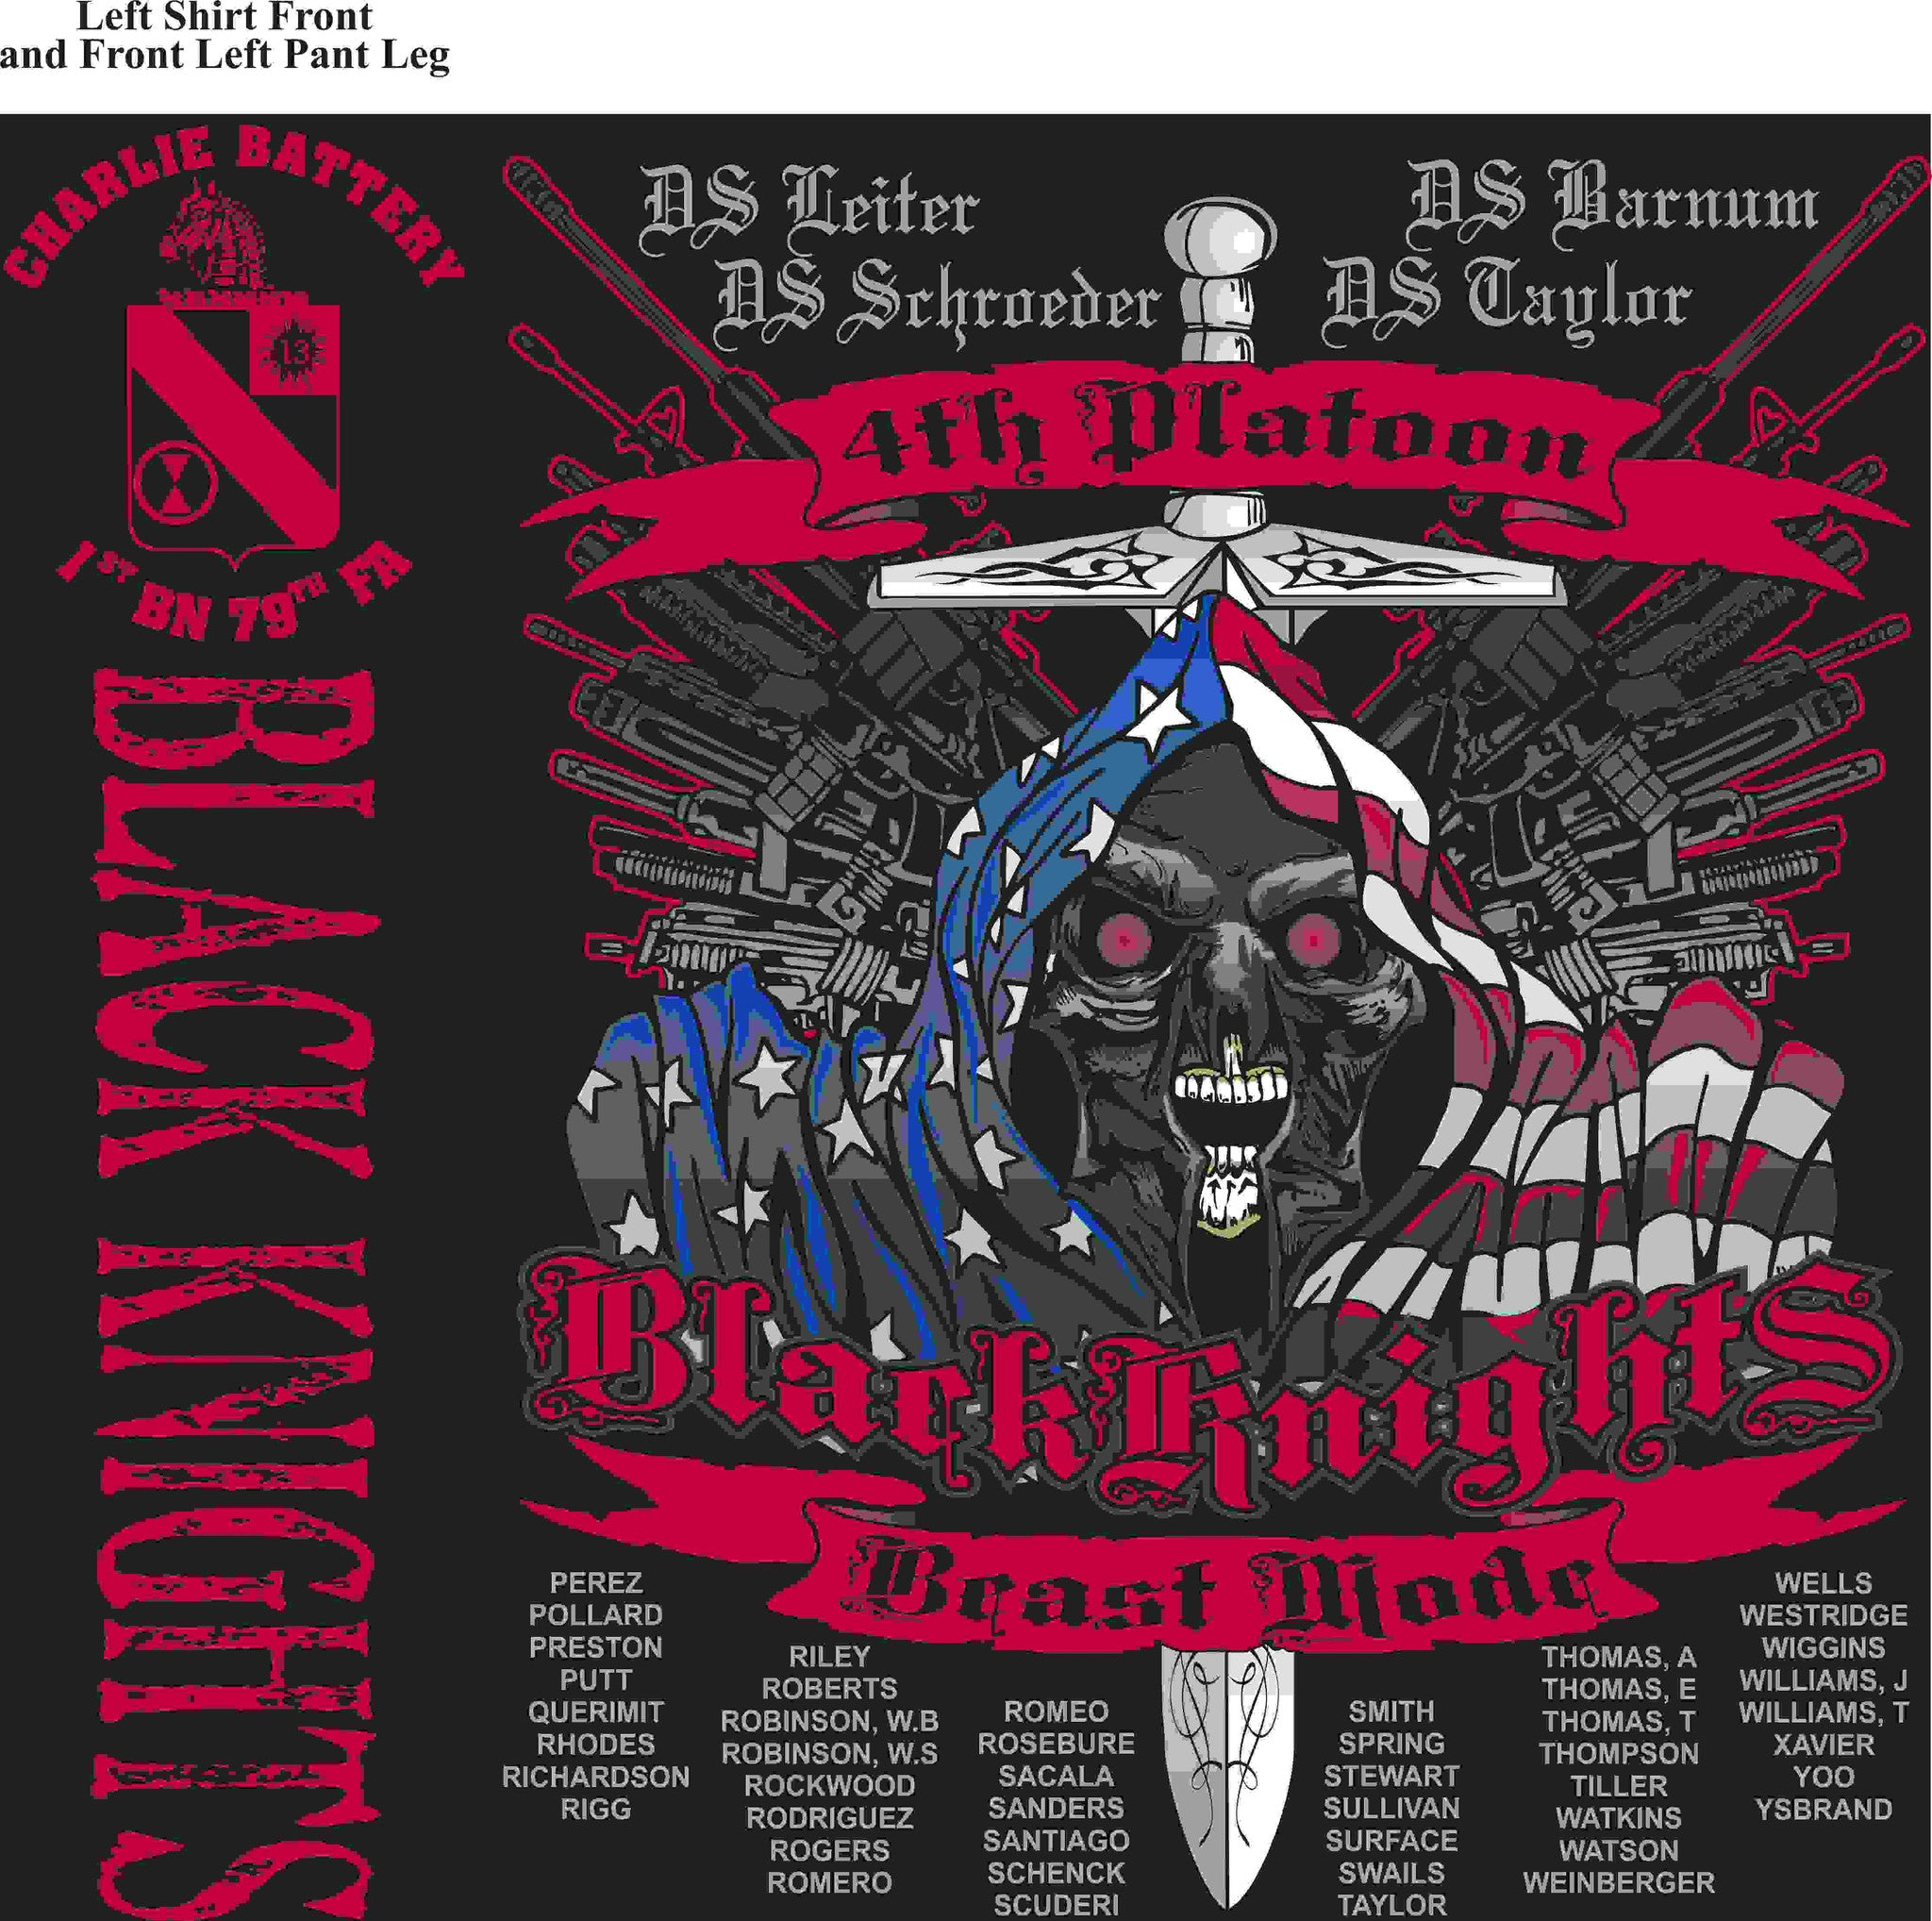 PLATOON SHIRTS (2nd generation print) CHARLIE 1st 79th BLACK KNIGHTS APR 2016